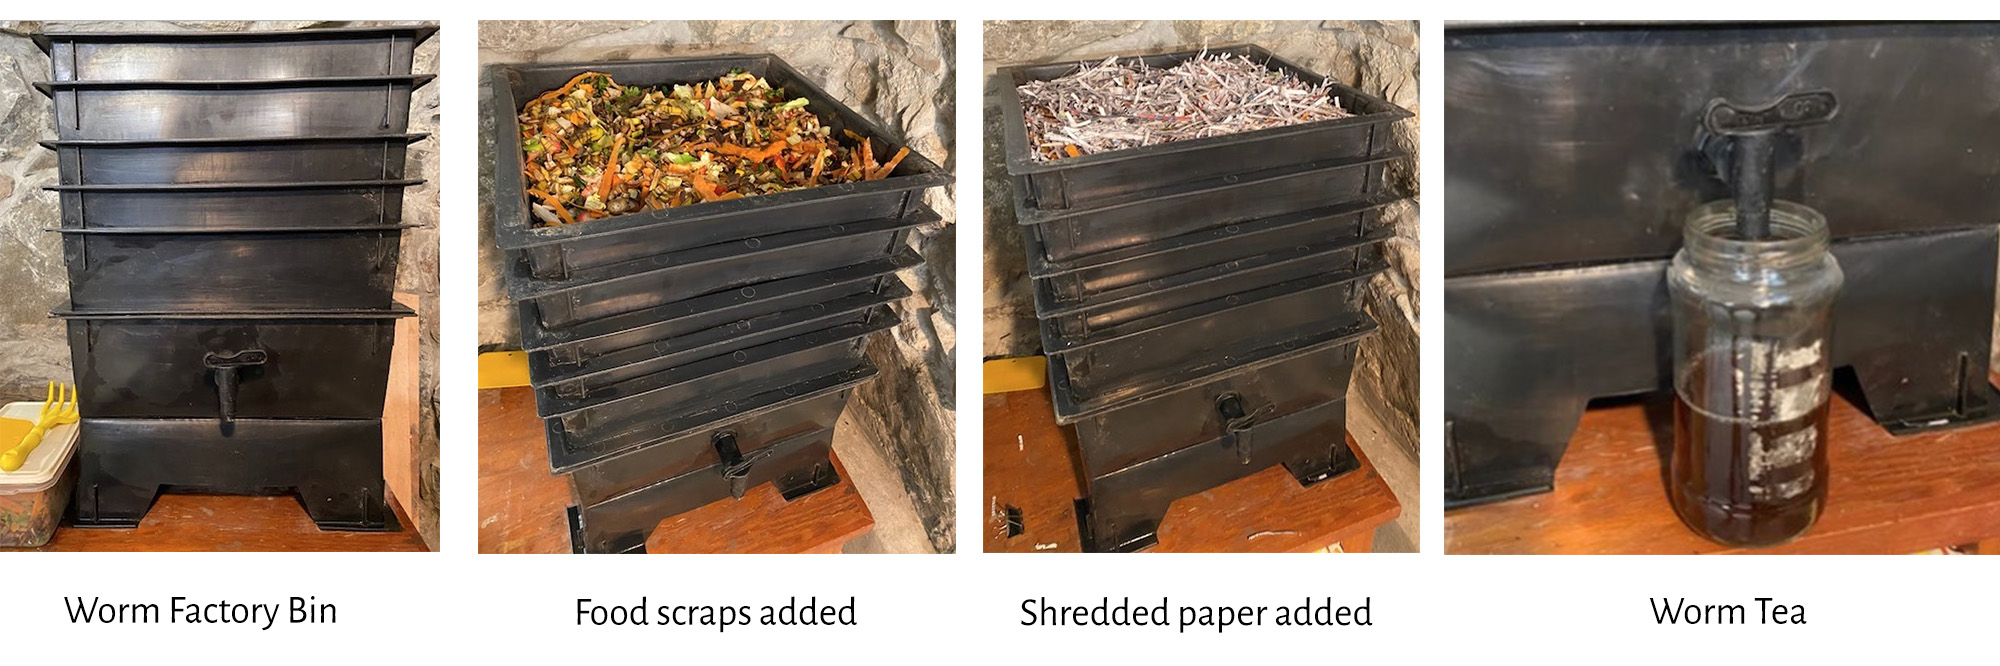 Worm factory bin, food scraps added, shredded paper added, and worm tea